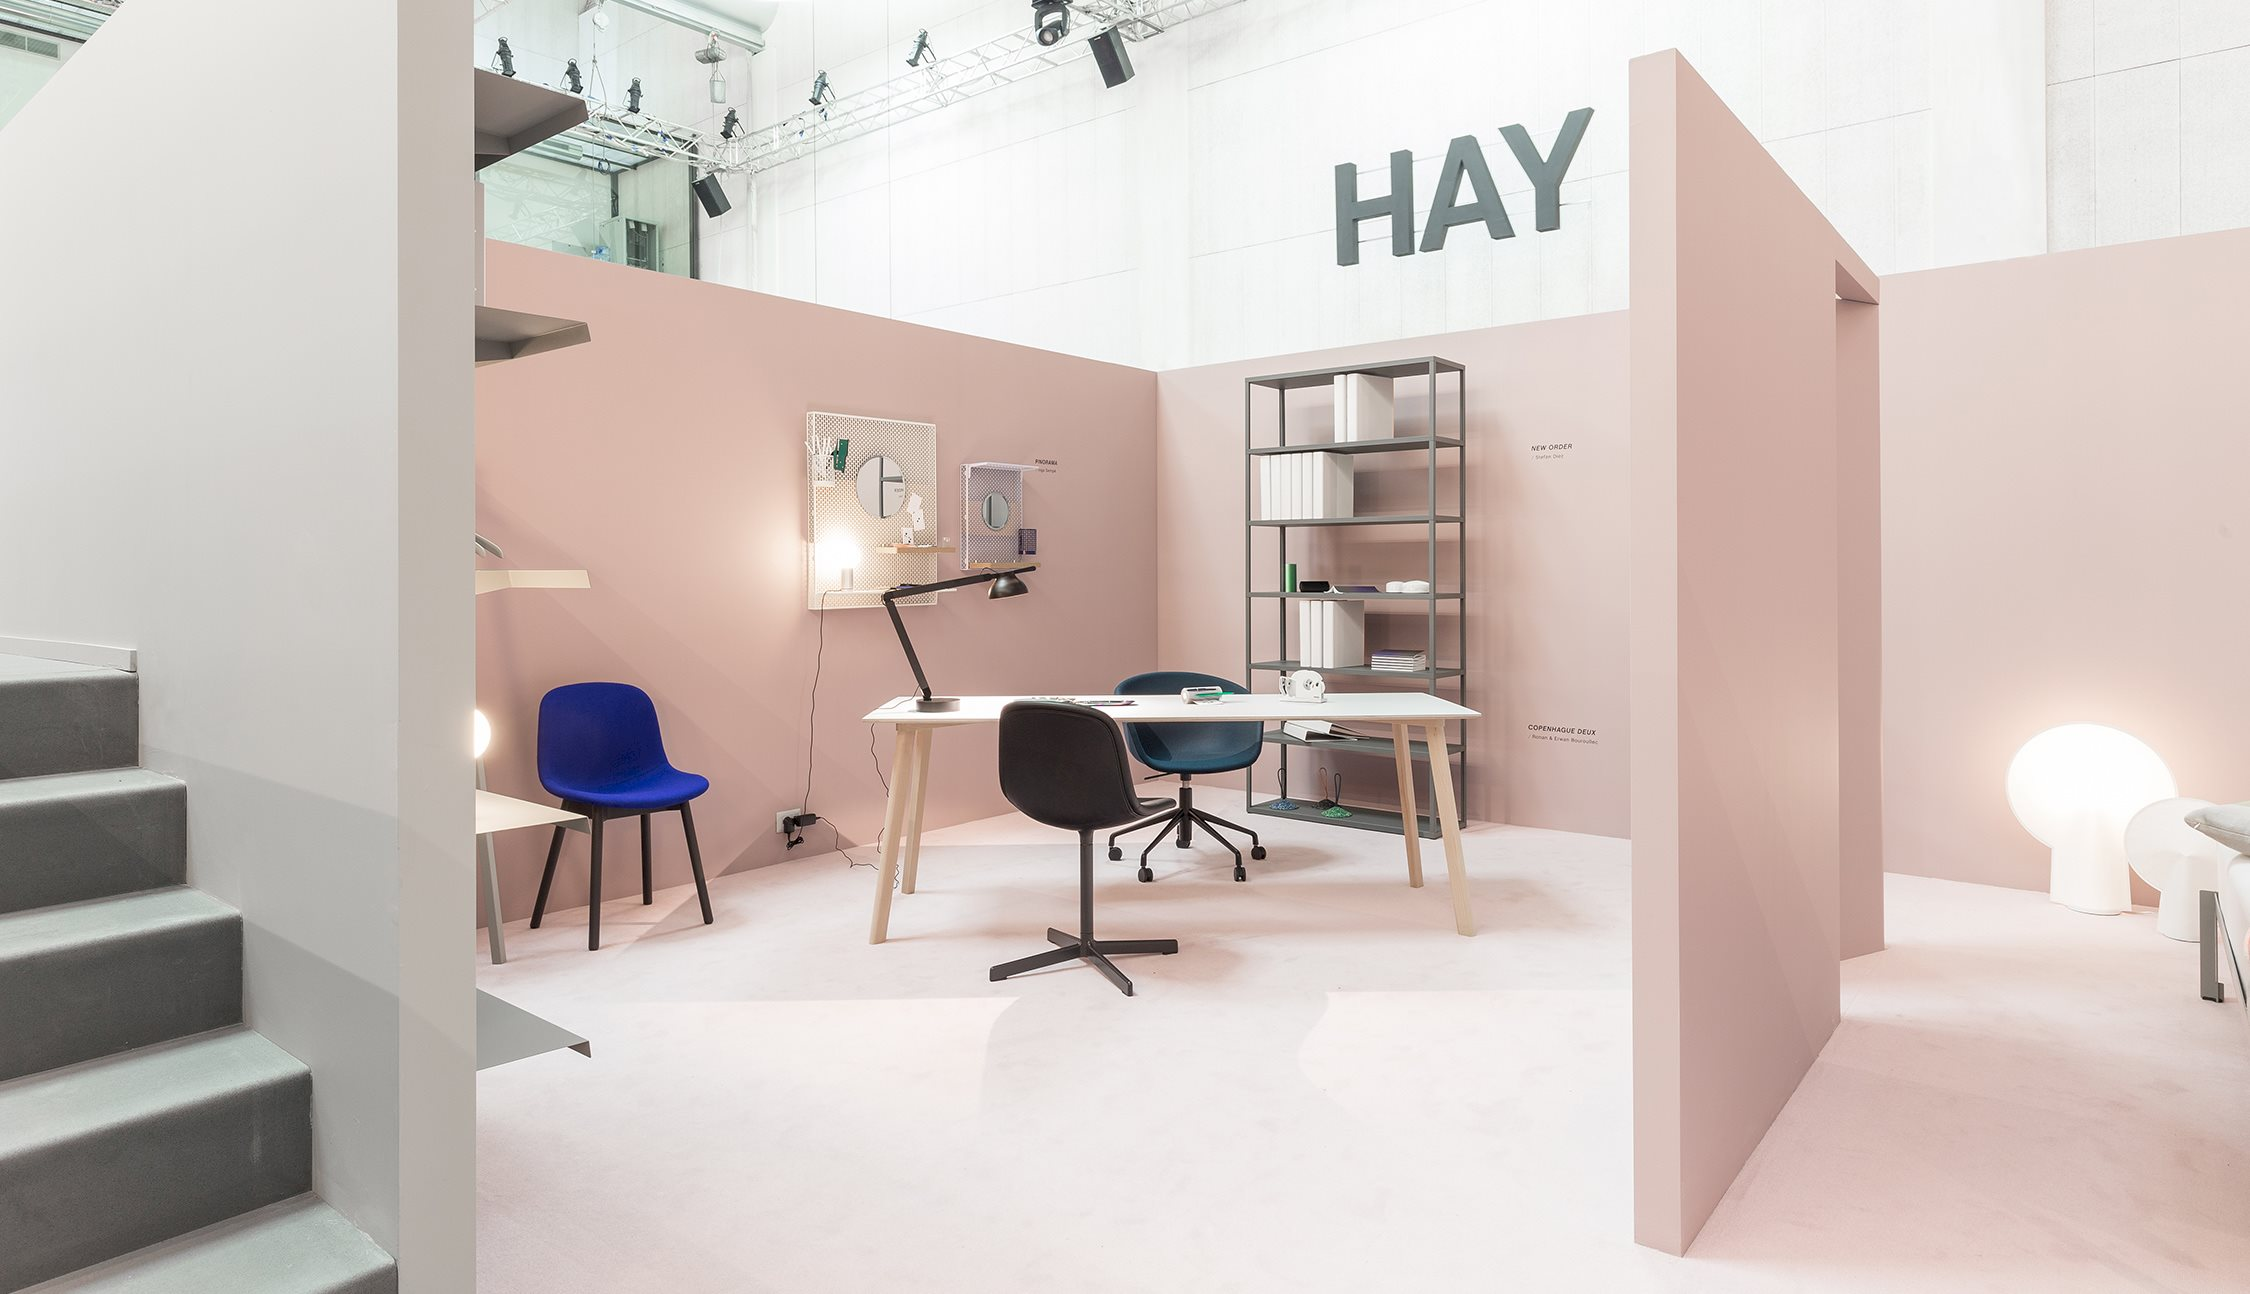 Together With Our Talented International Designers, HAY Exhibited A  Collection That Builds Upon The Core Belief That Good Design Should Be  Accessible To All ...